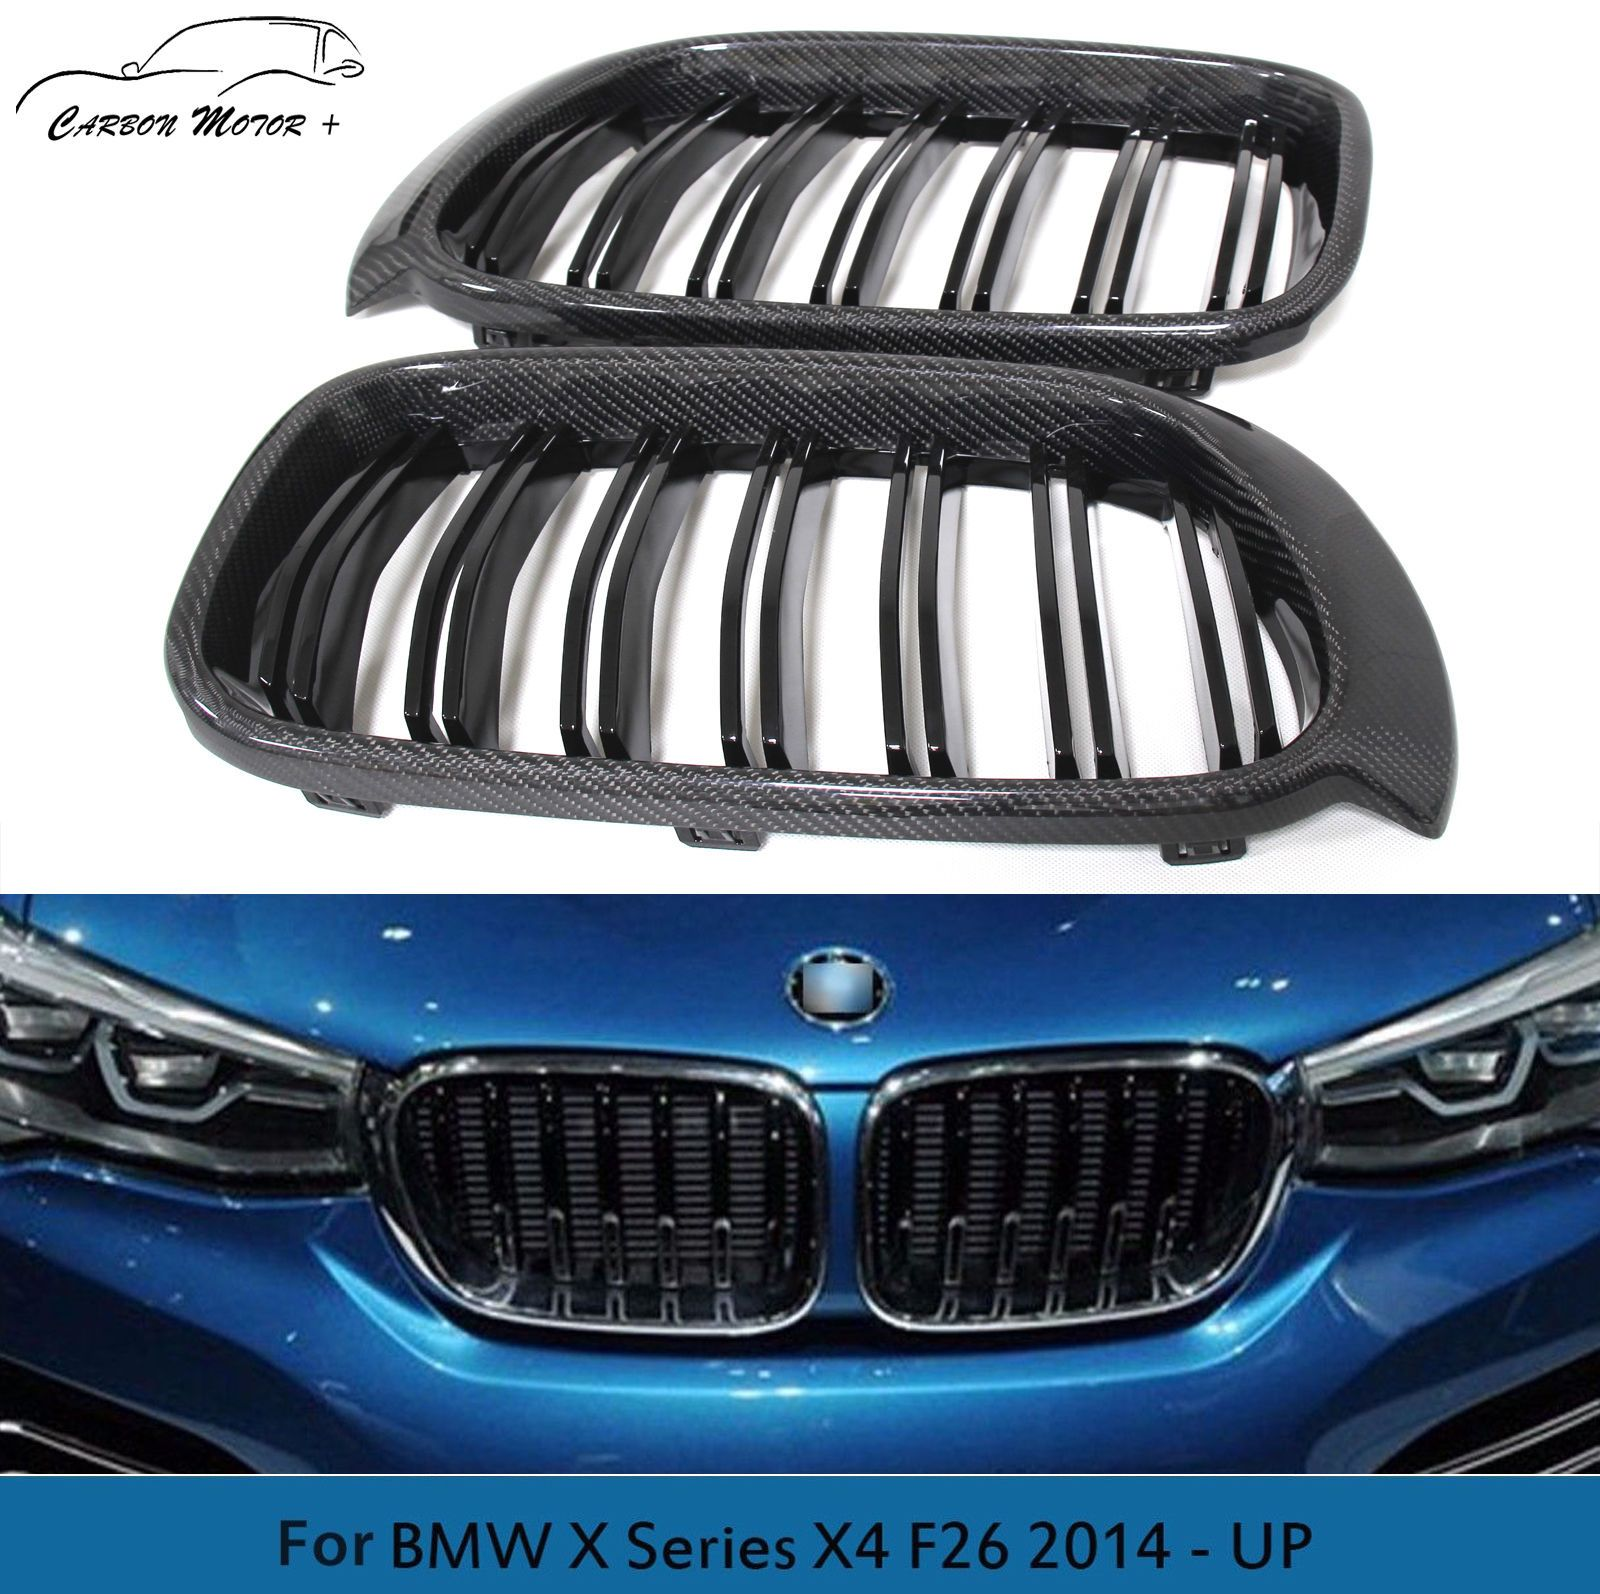 carbon fiber front grille m look tuning for bmw x3 f25. Black Bedroom Furniture Sets. Home Design Ideas